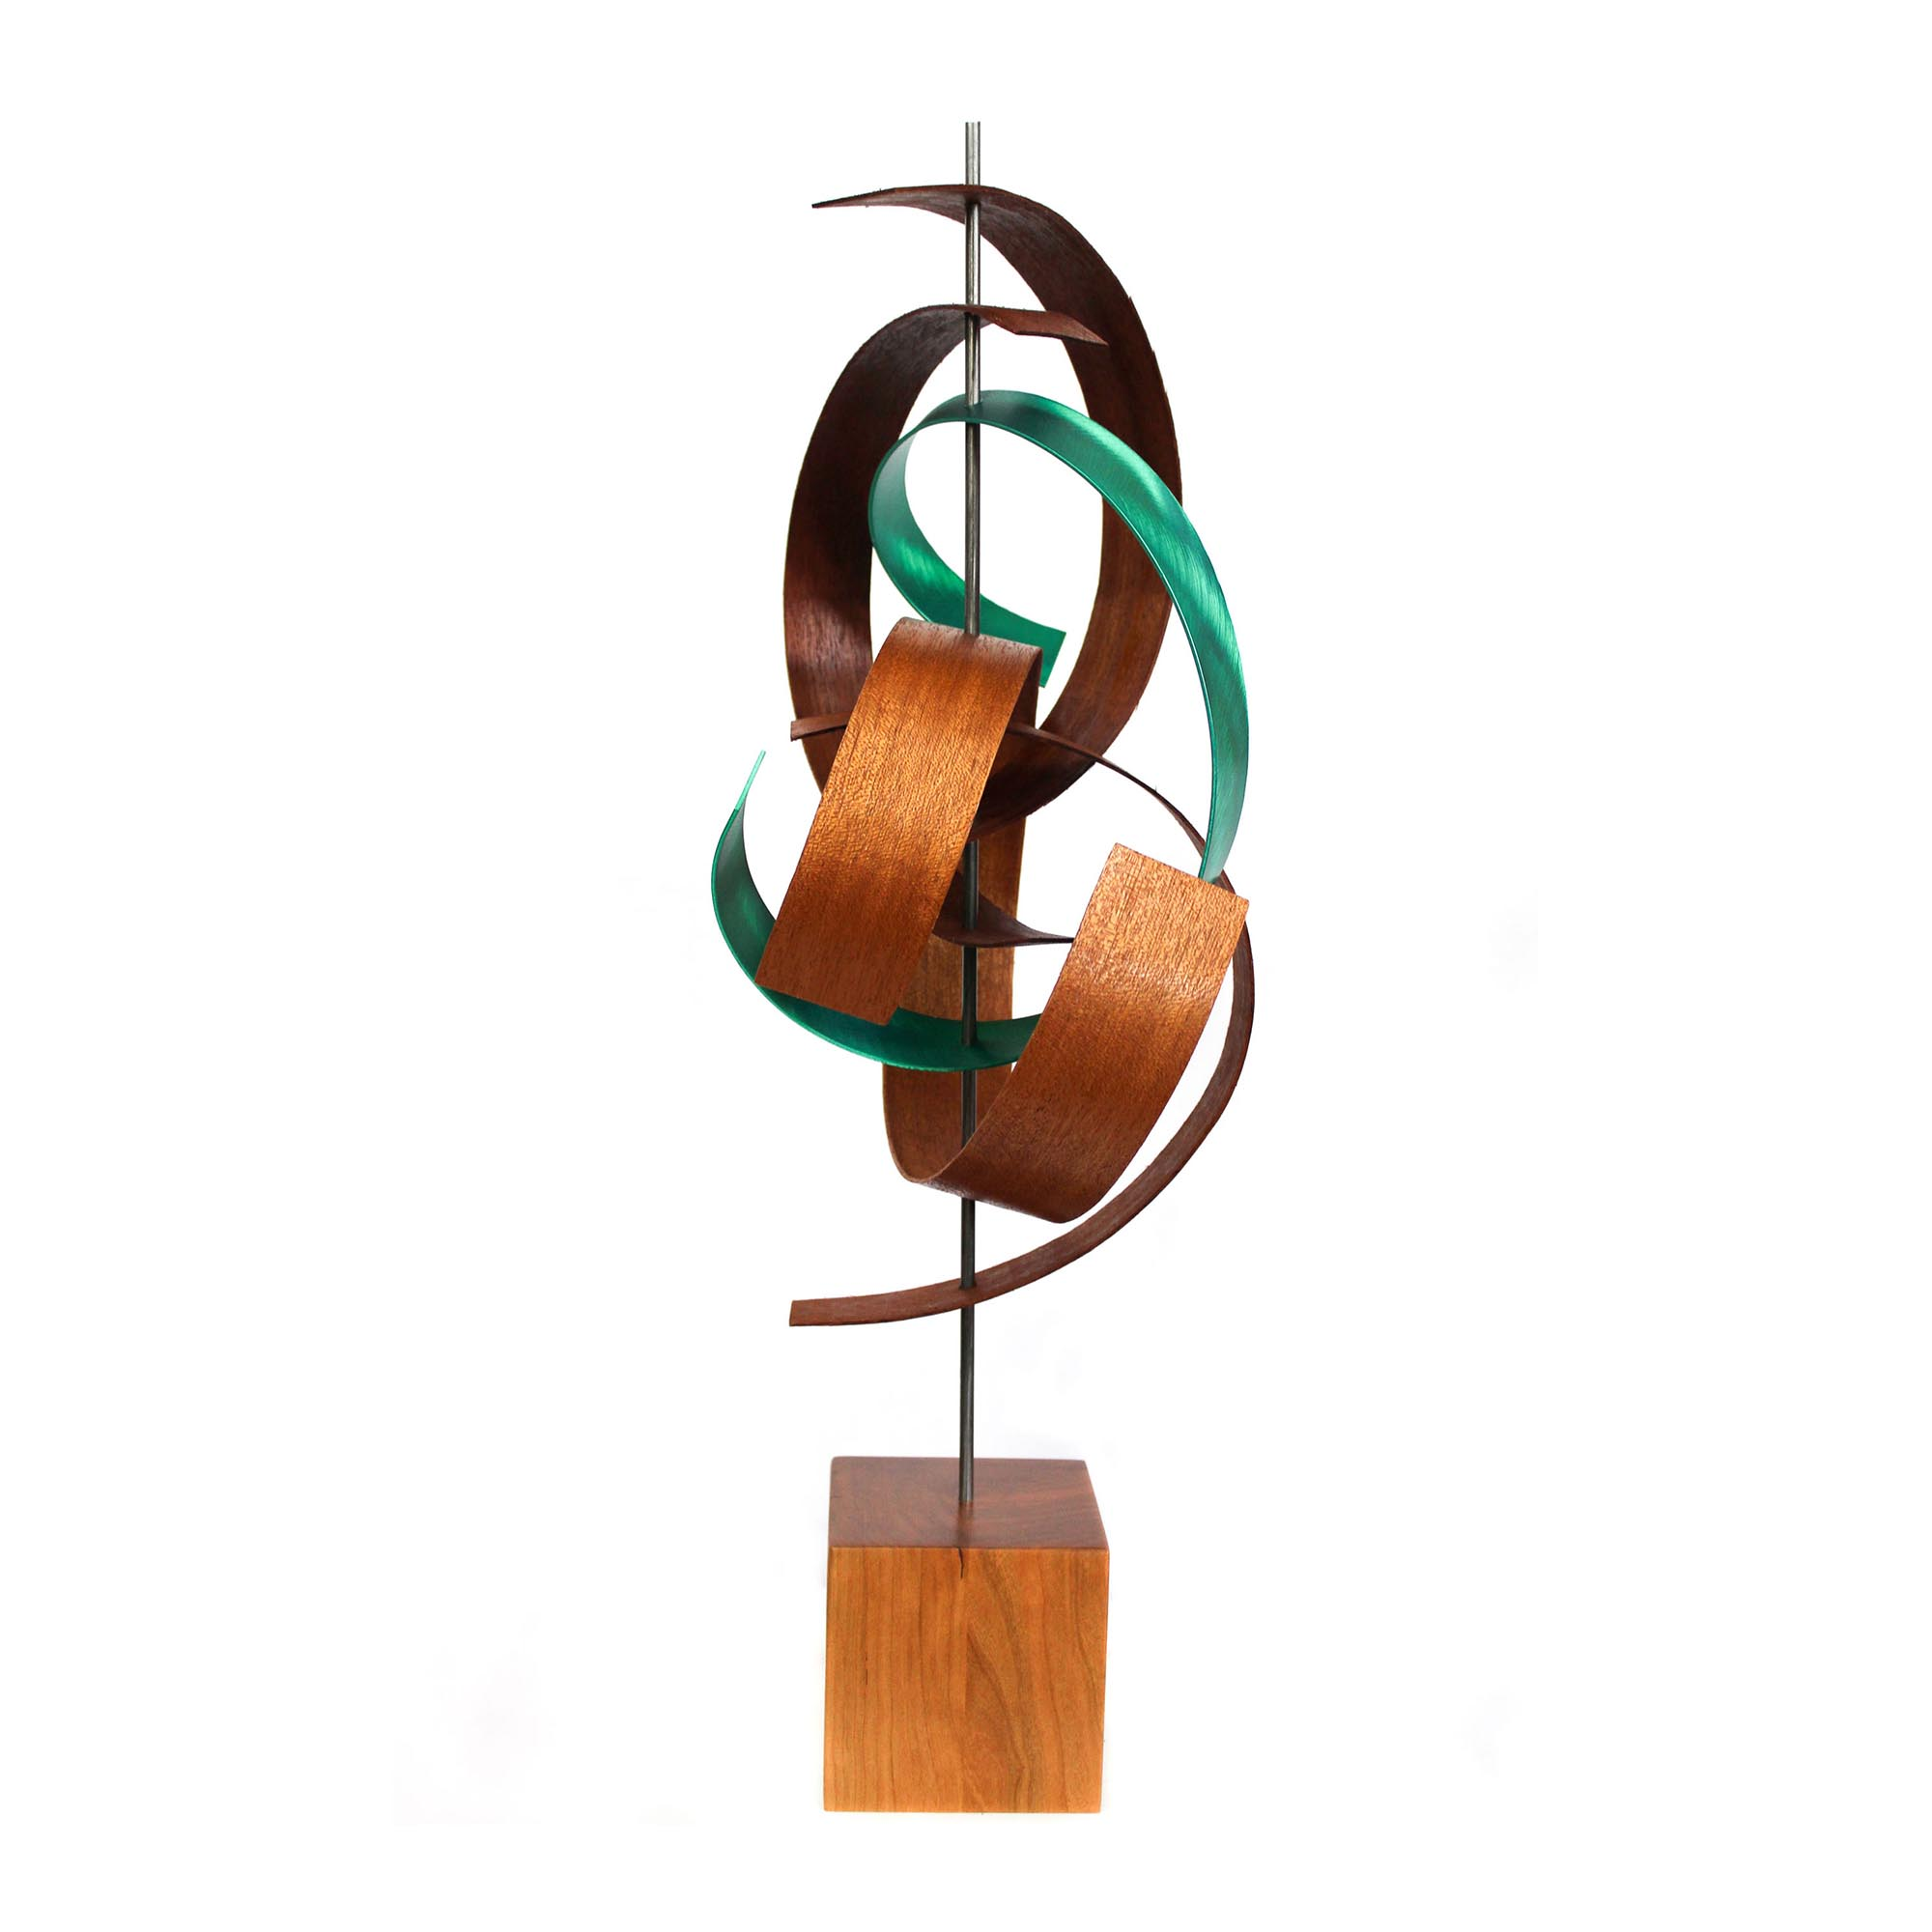 Intertwine by Jackson Wright - Modern Wood Sculpture, Mid-Century Home Decor - Image 3